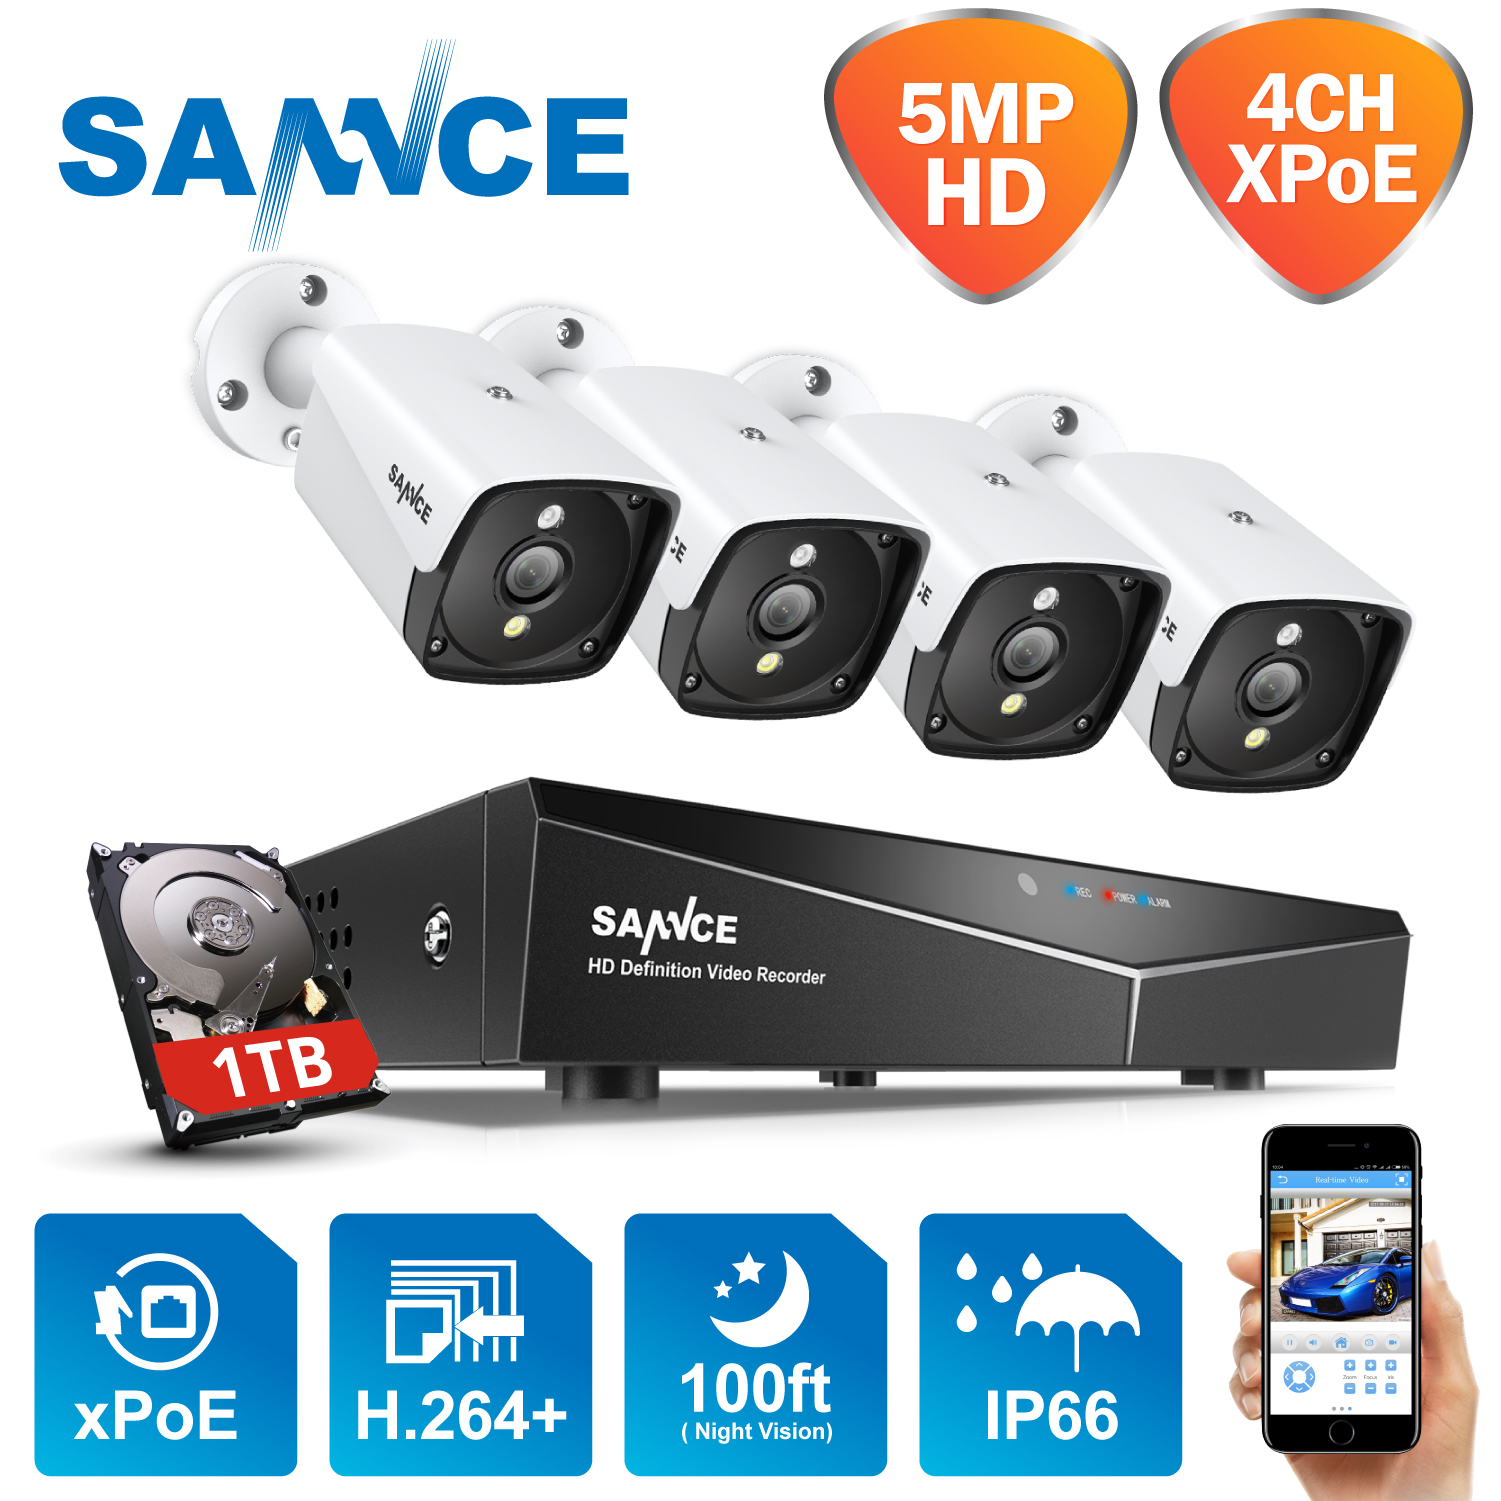 SANNCE H.264+ 4CH 5MP POE Security Camera System Kit 4PCS 5MP HD IP Camera Outdoor Waterproof CCTV Video Surveillance NVR Set image